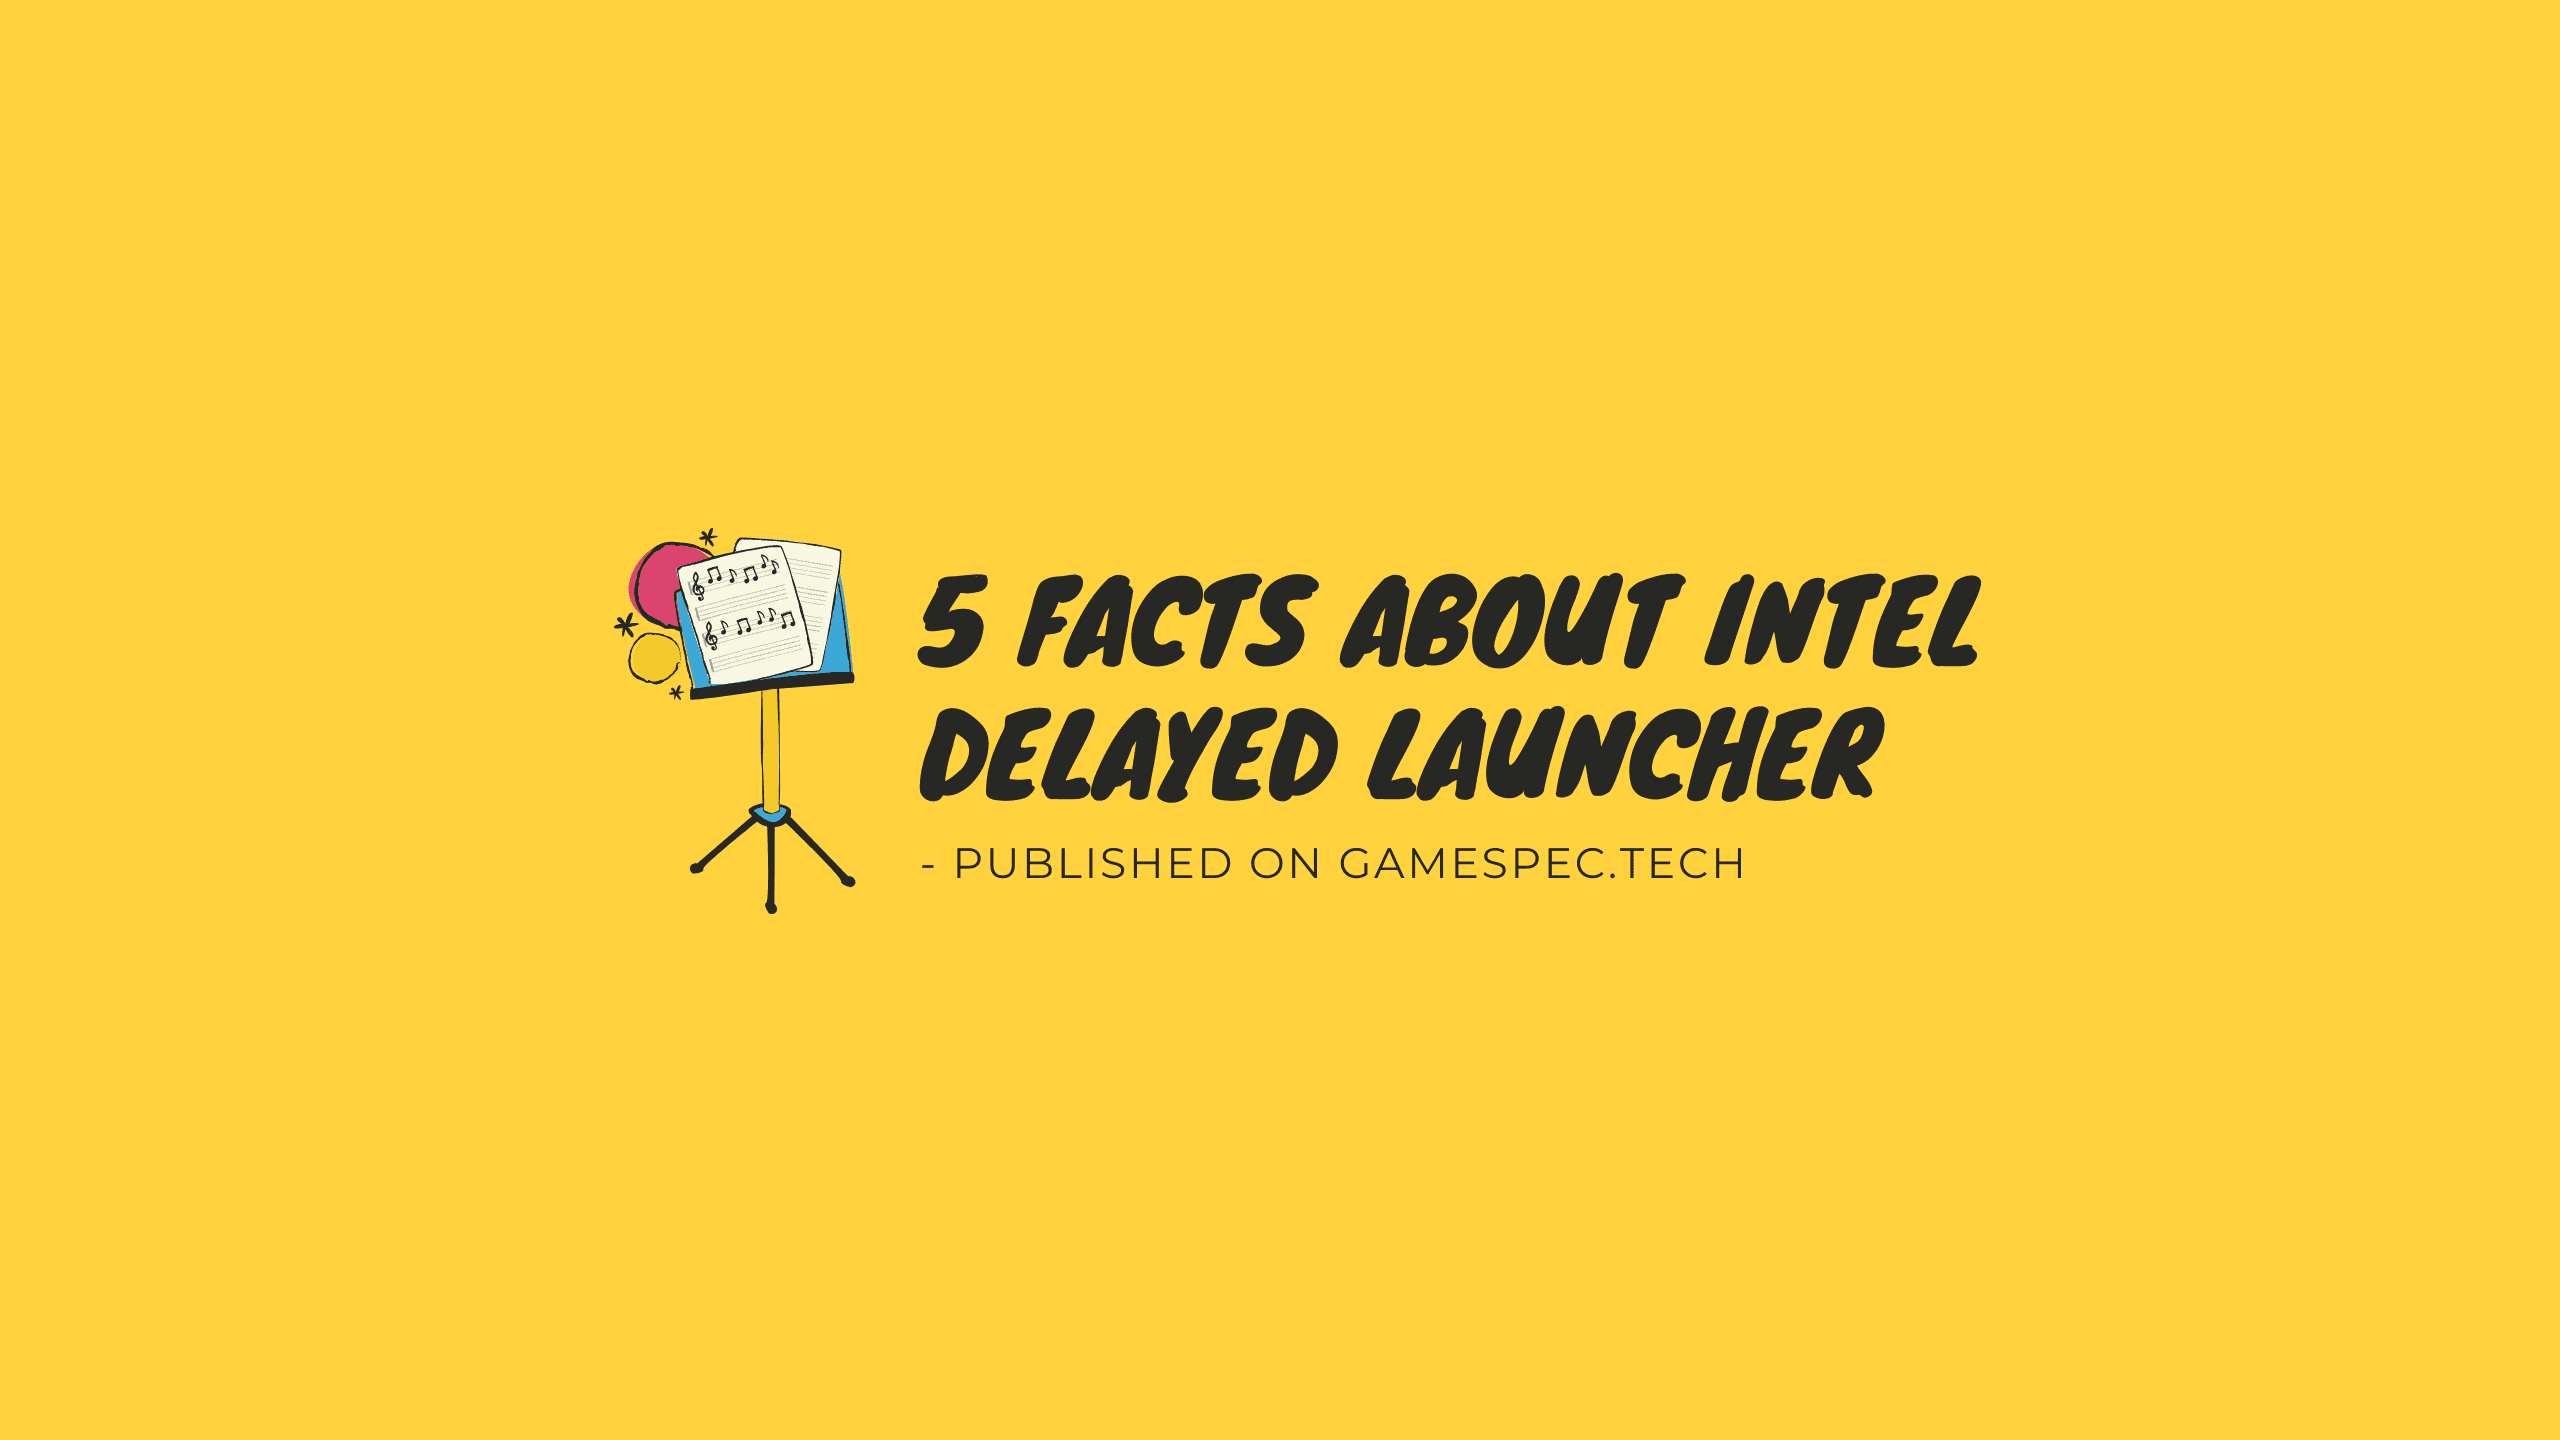 5 facts about Intel delayed launcher